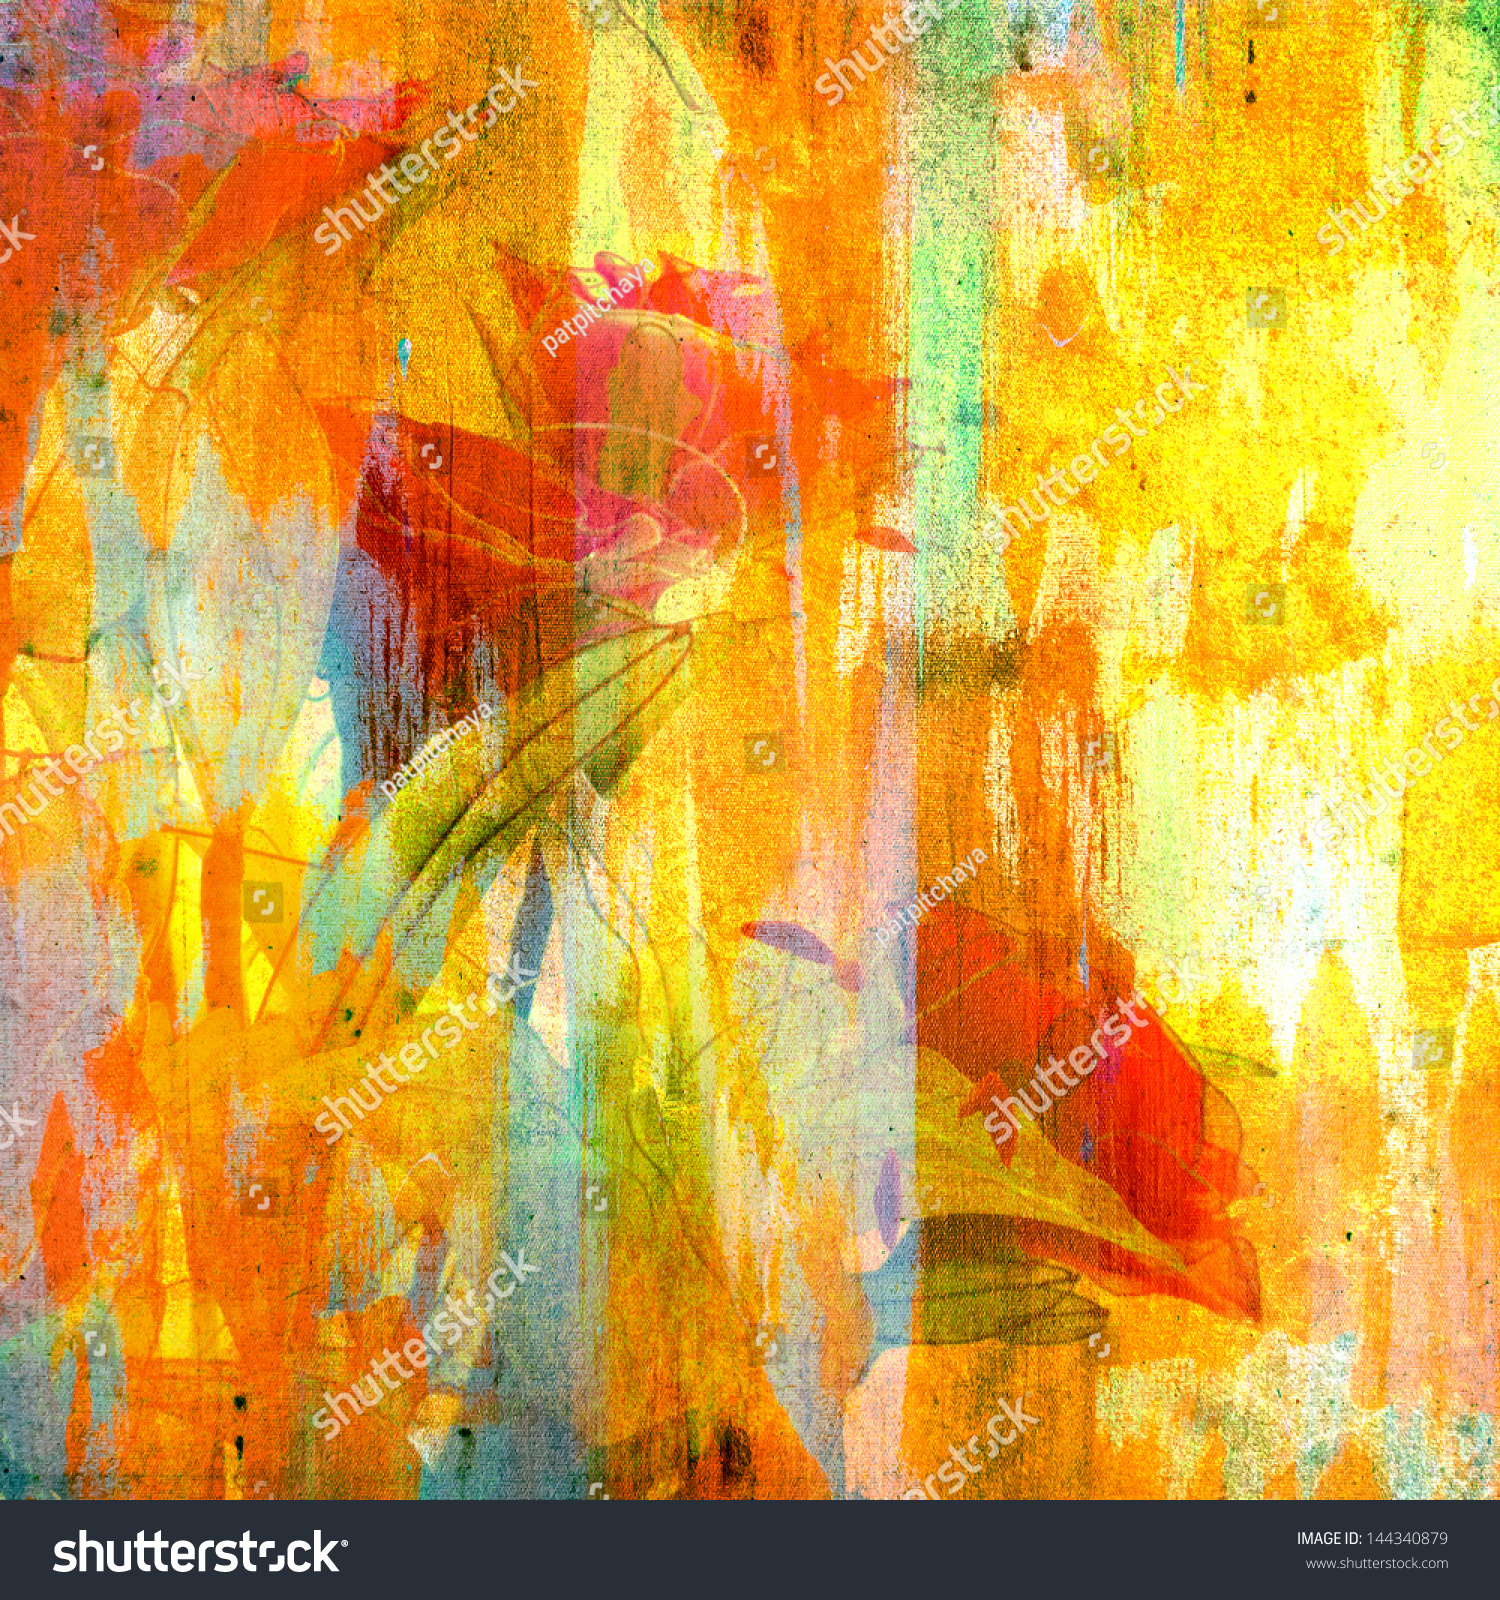 Grunge Colorful Painting With Artificial Rose On Canvas Texture